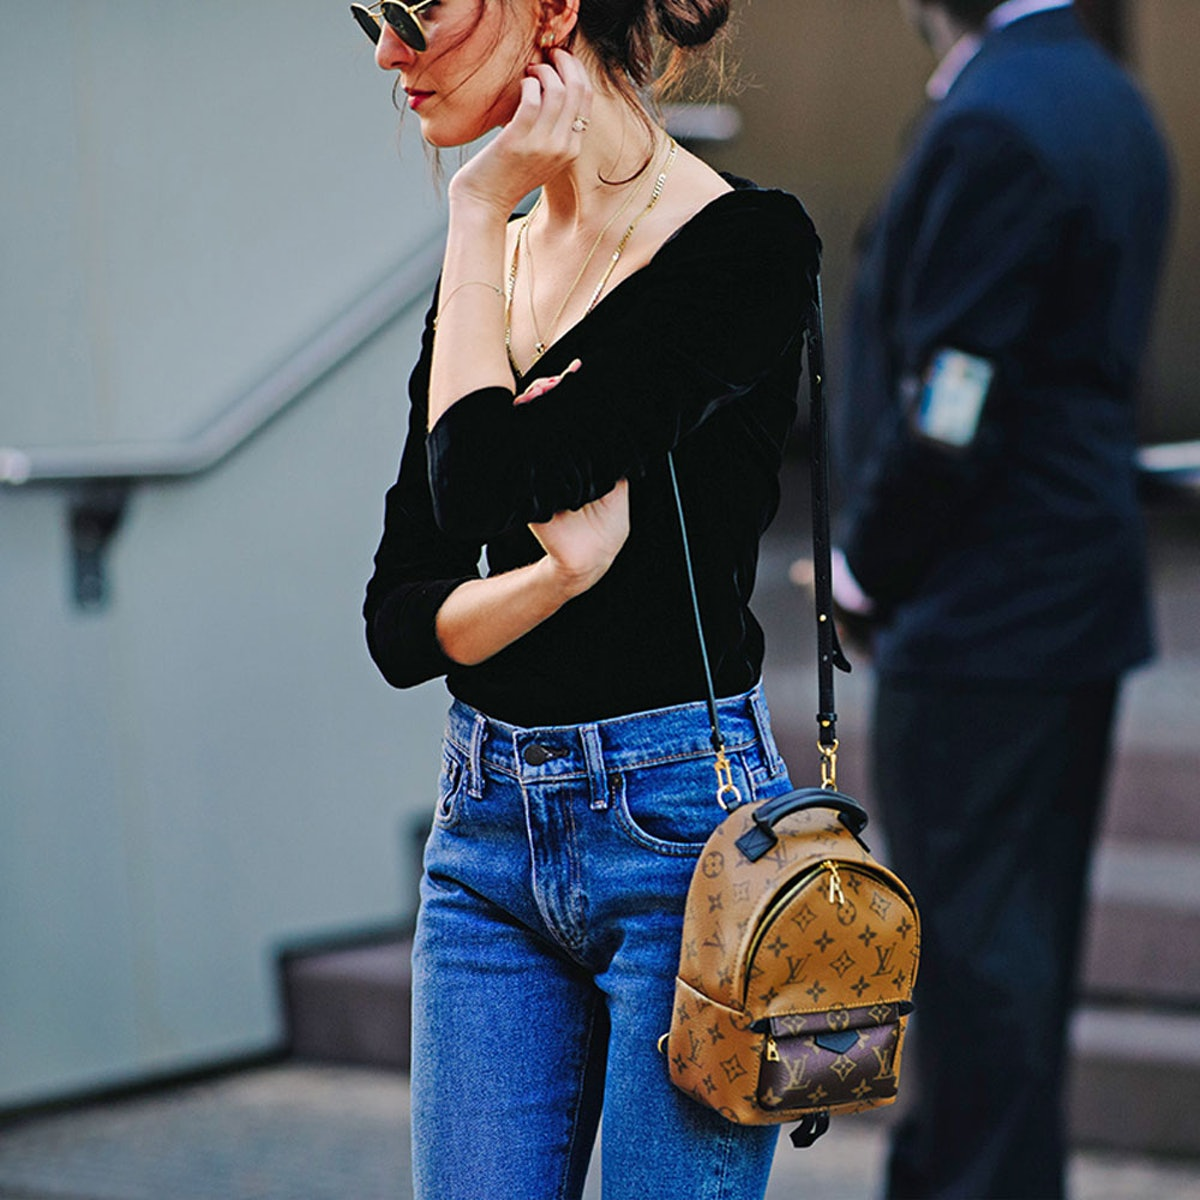 This Trend Used To Be Cheesy, But Now It's Insanely Chic